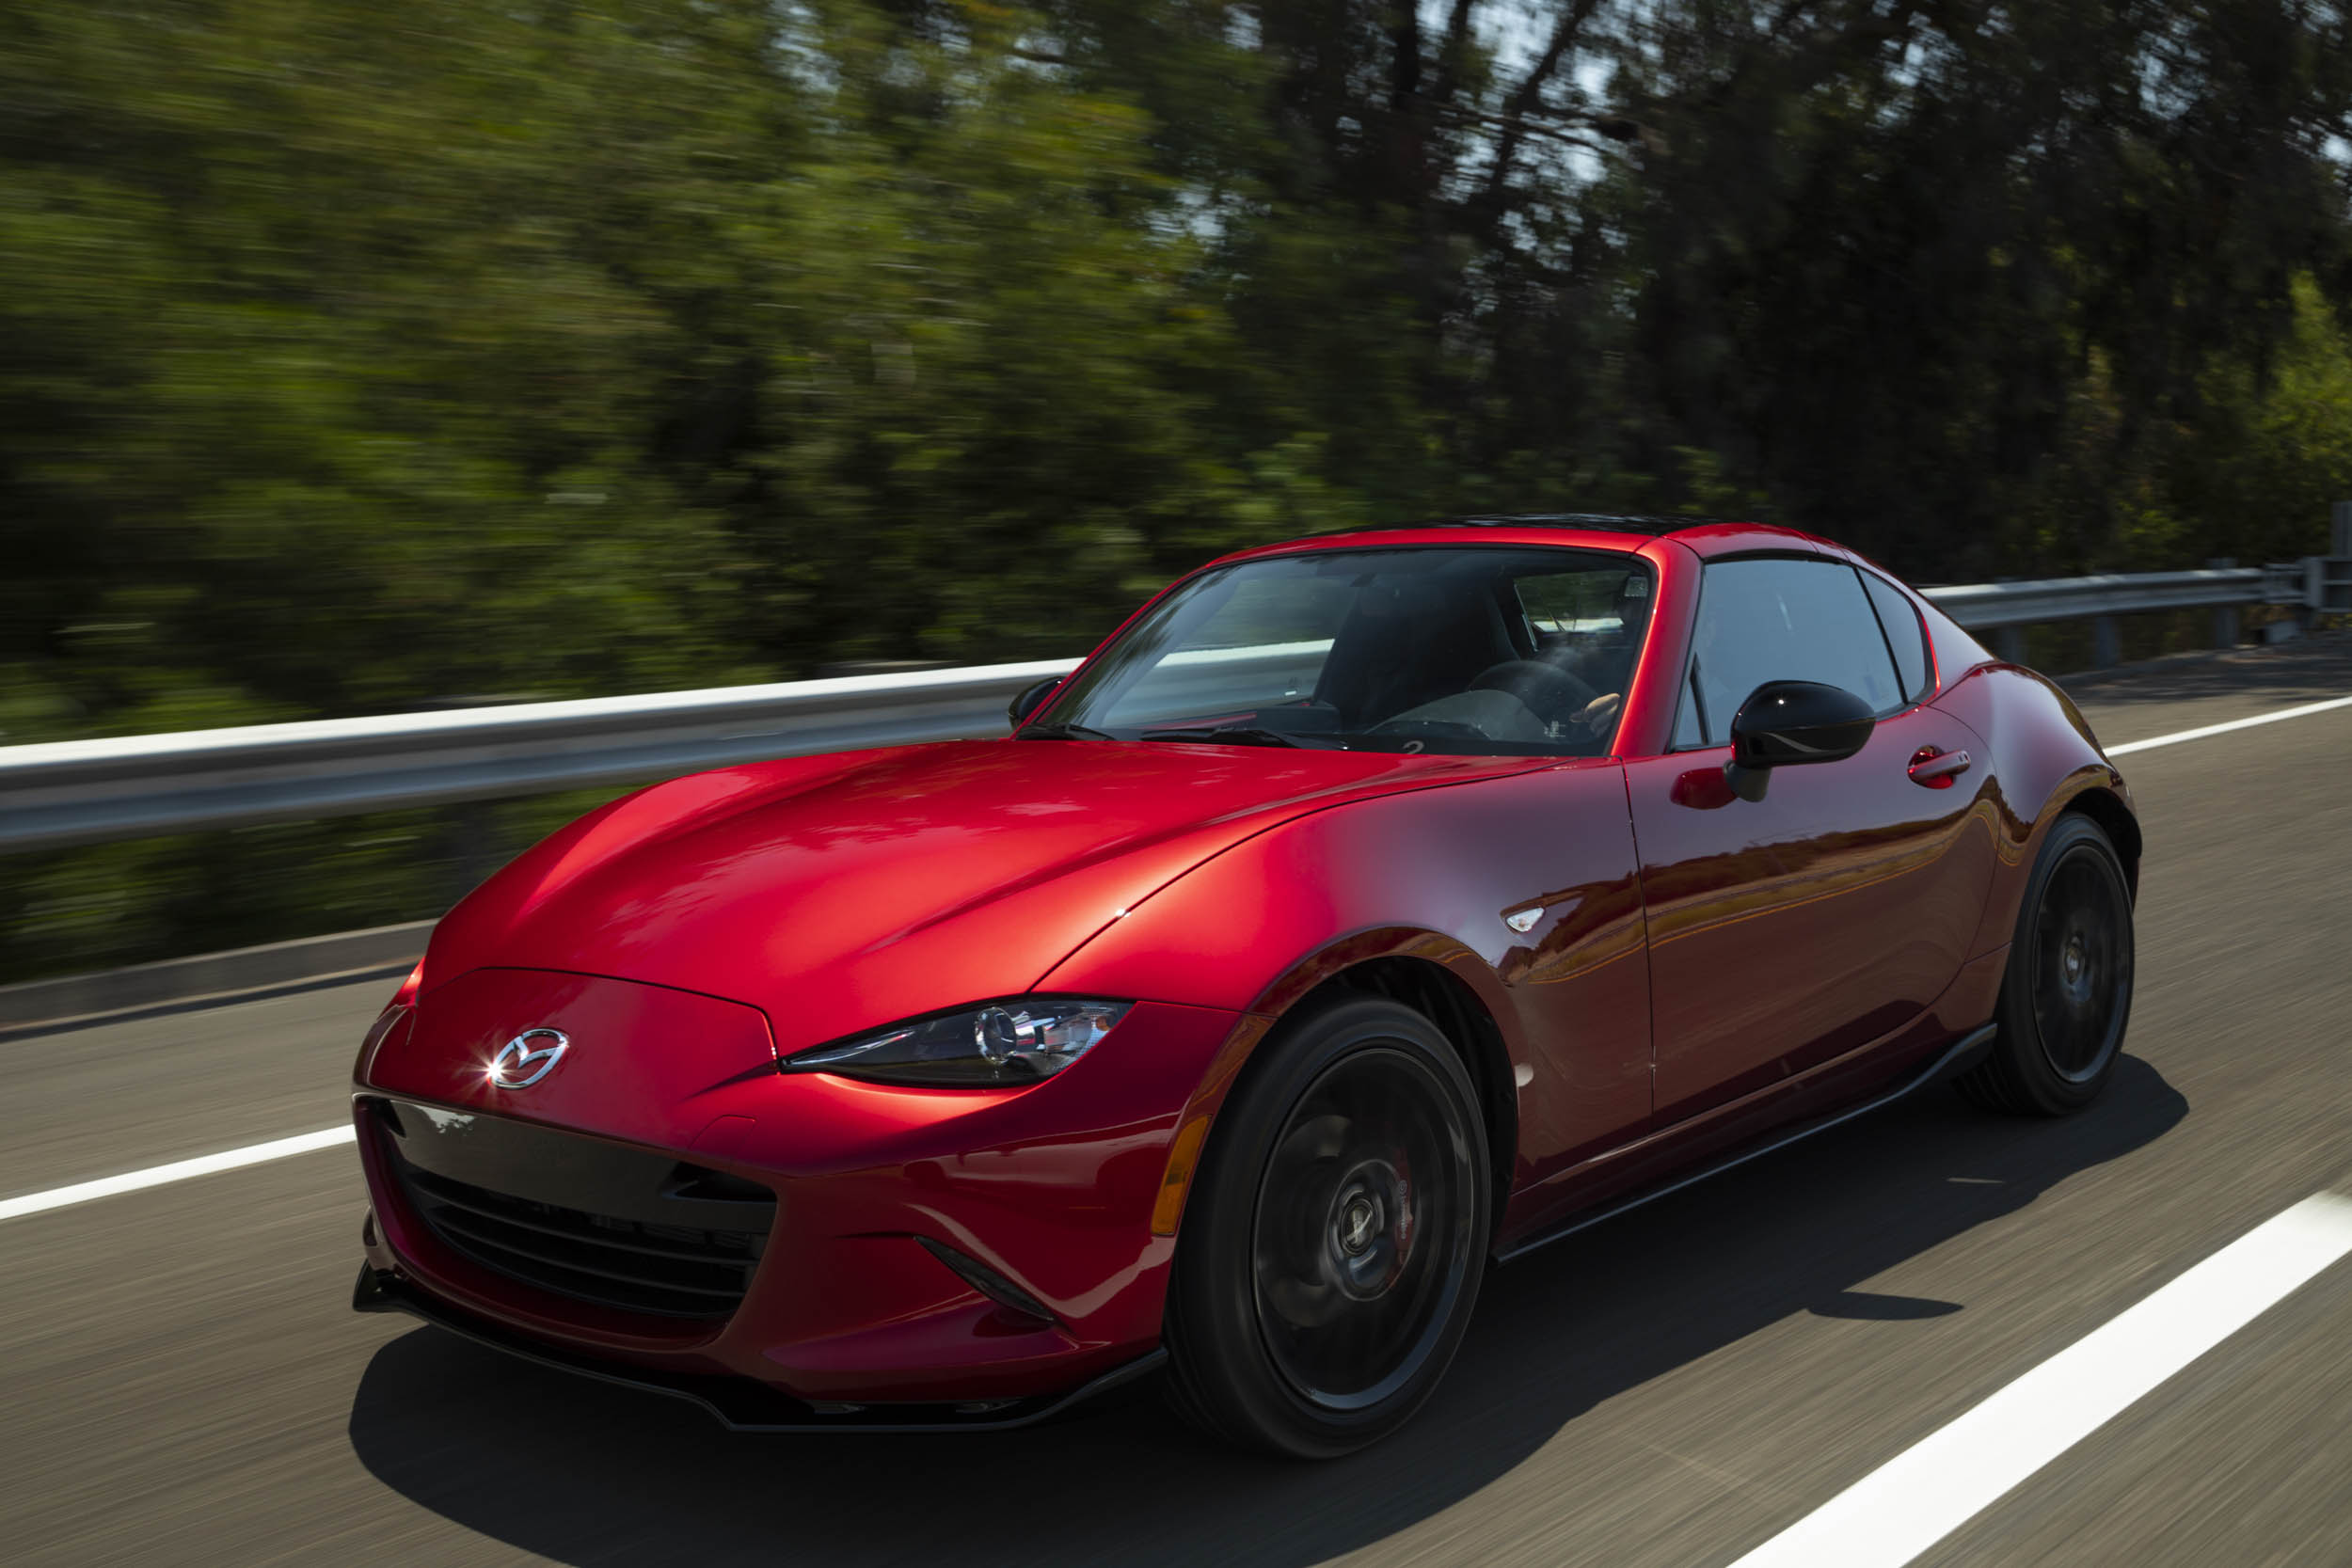 Red 2019 Mazda MX-5 Miata Roadster drving